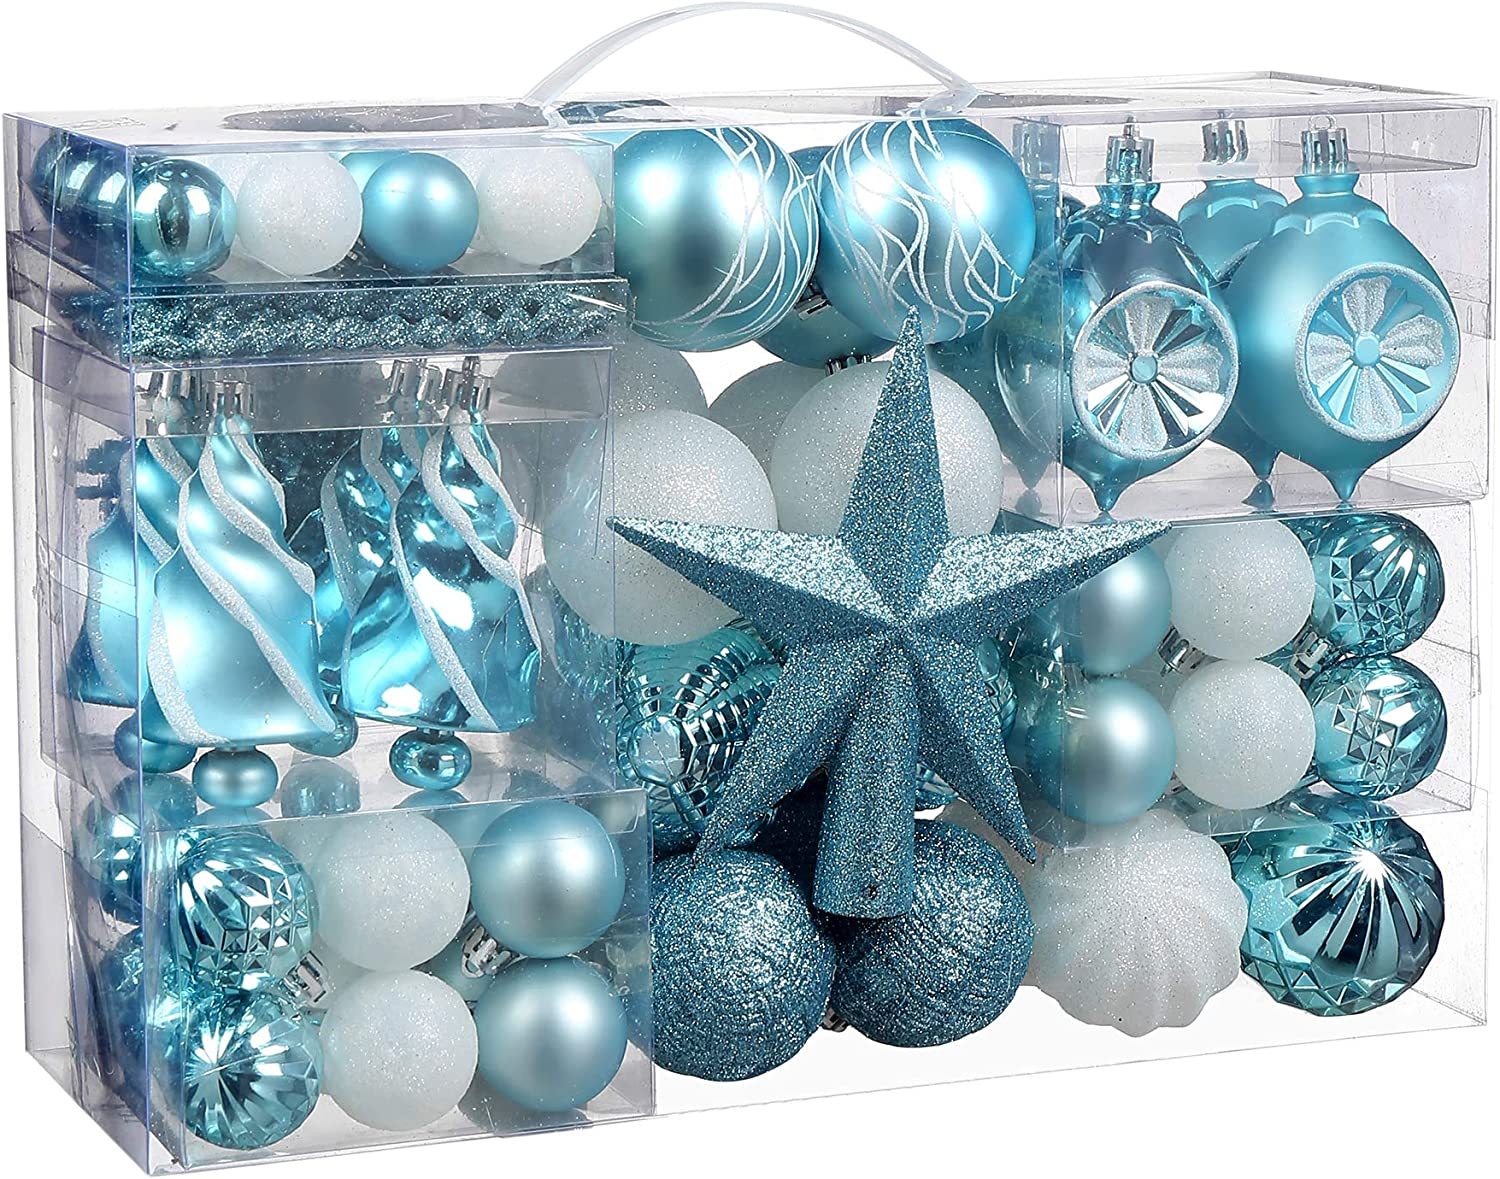 Christmas Ball Ornaments, 99 Pcs Assorted Shatterproof Christmas Ball Set with Gift Package, for Christmas Tree Decor(Light Blue and White)